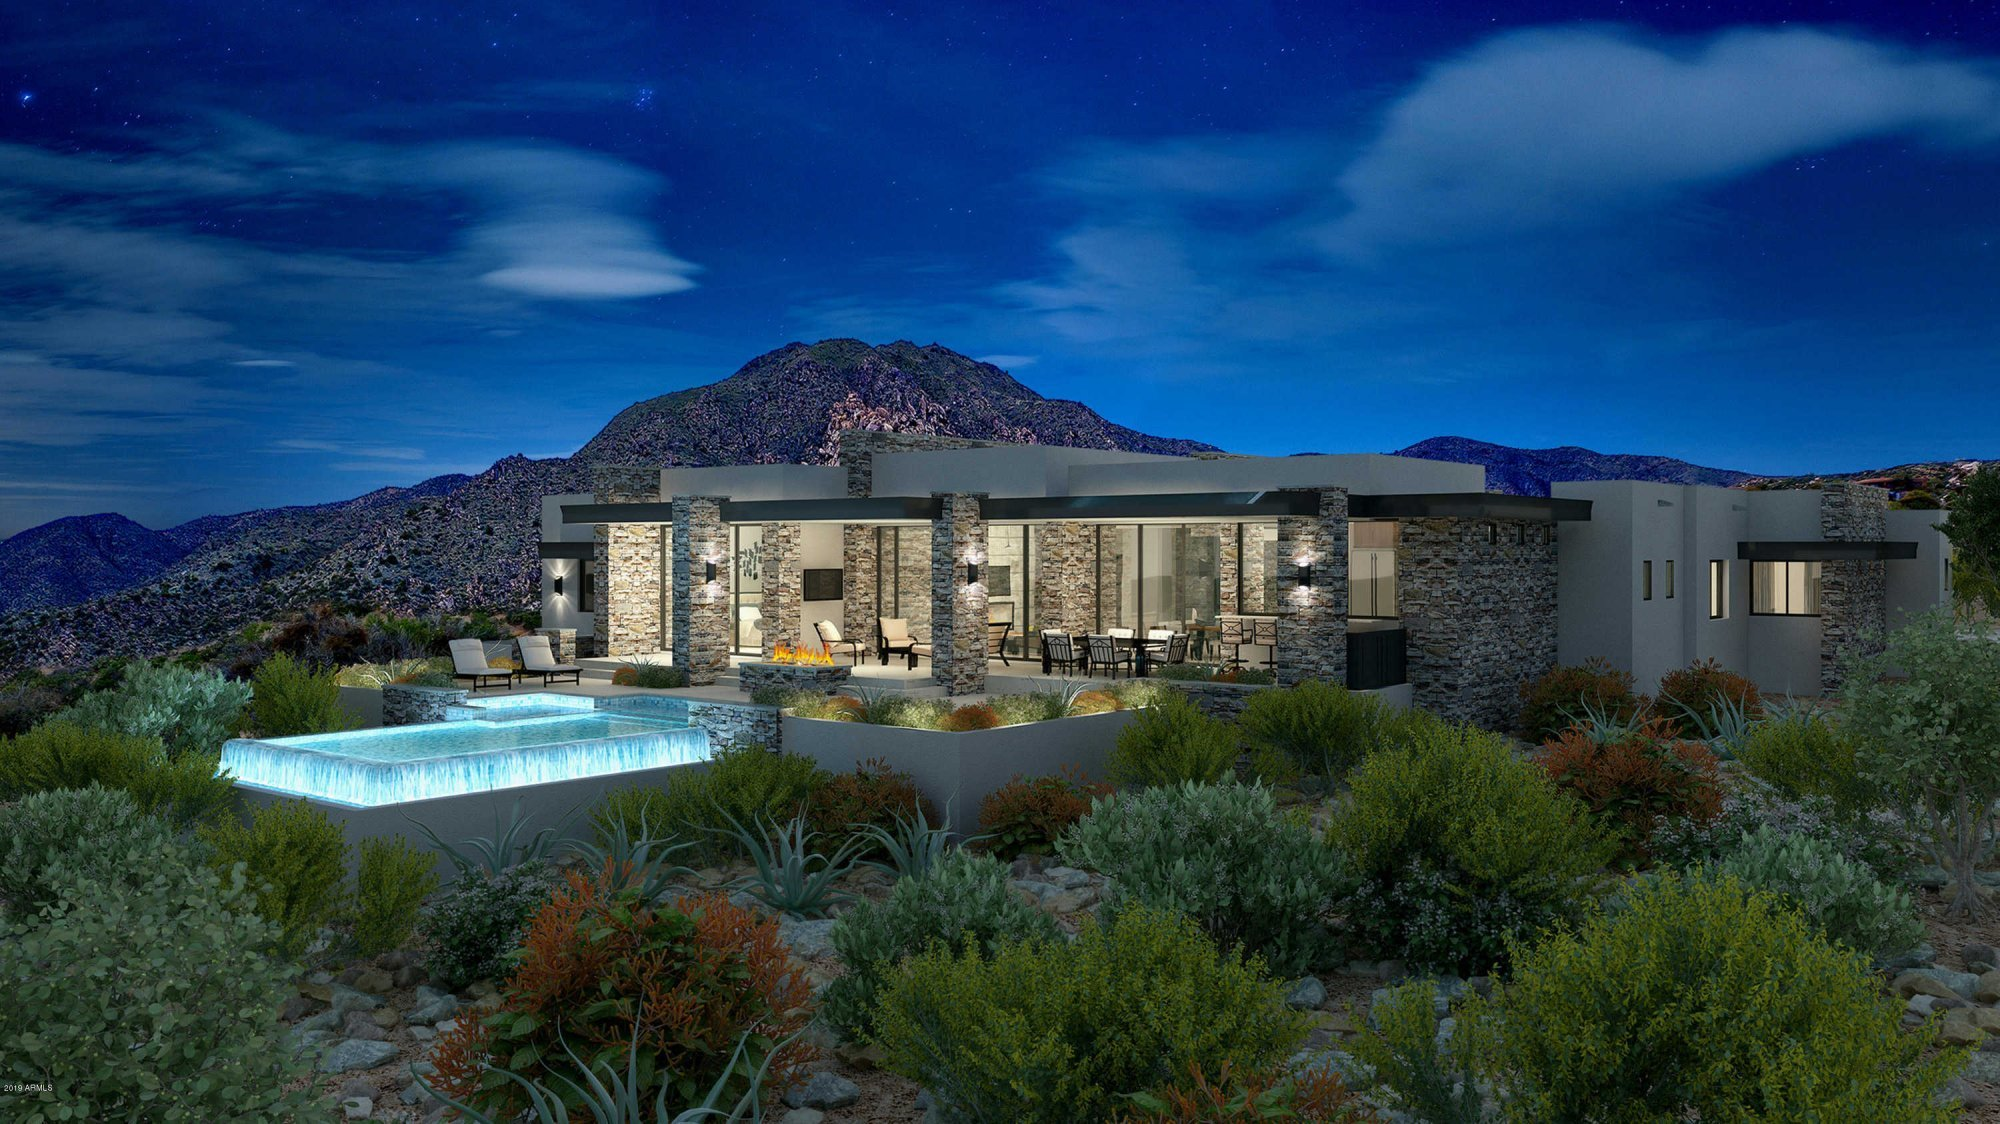 HOMES FOR SALE IN EAST VALLEY PHOENIX ARIZONA